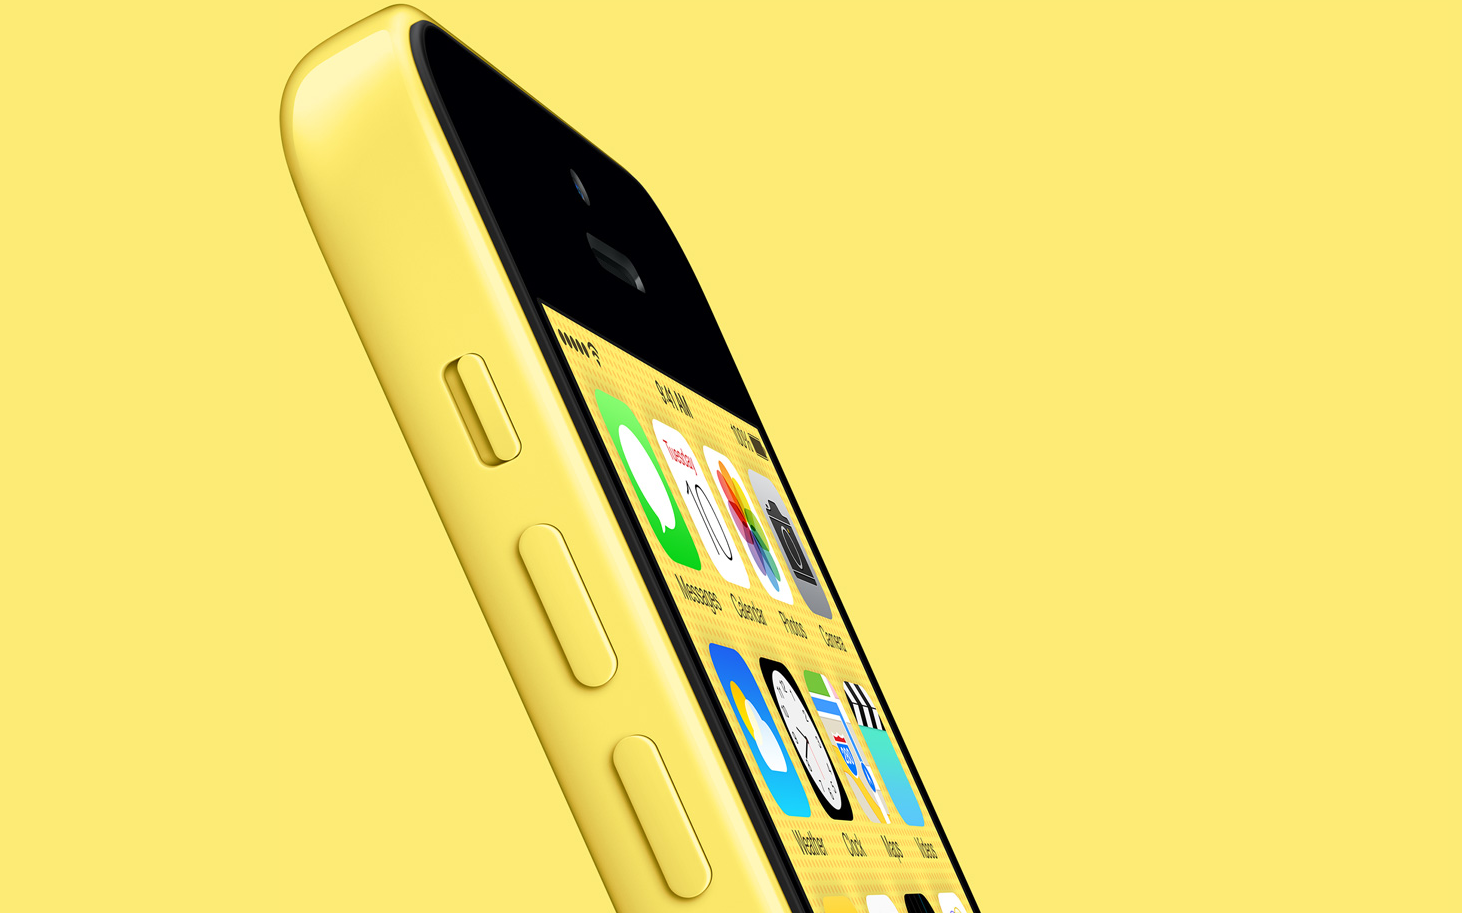 yellow iPhone 5c yellow background